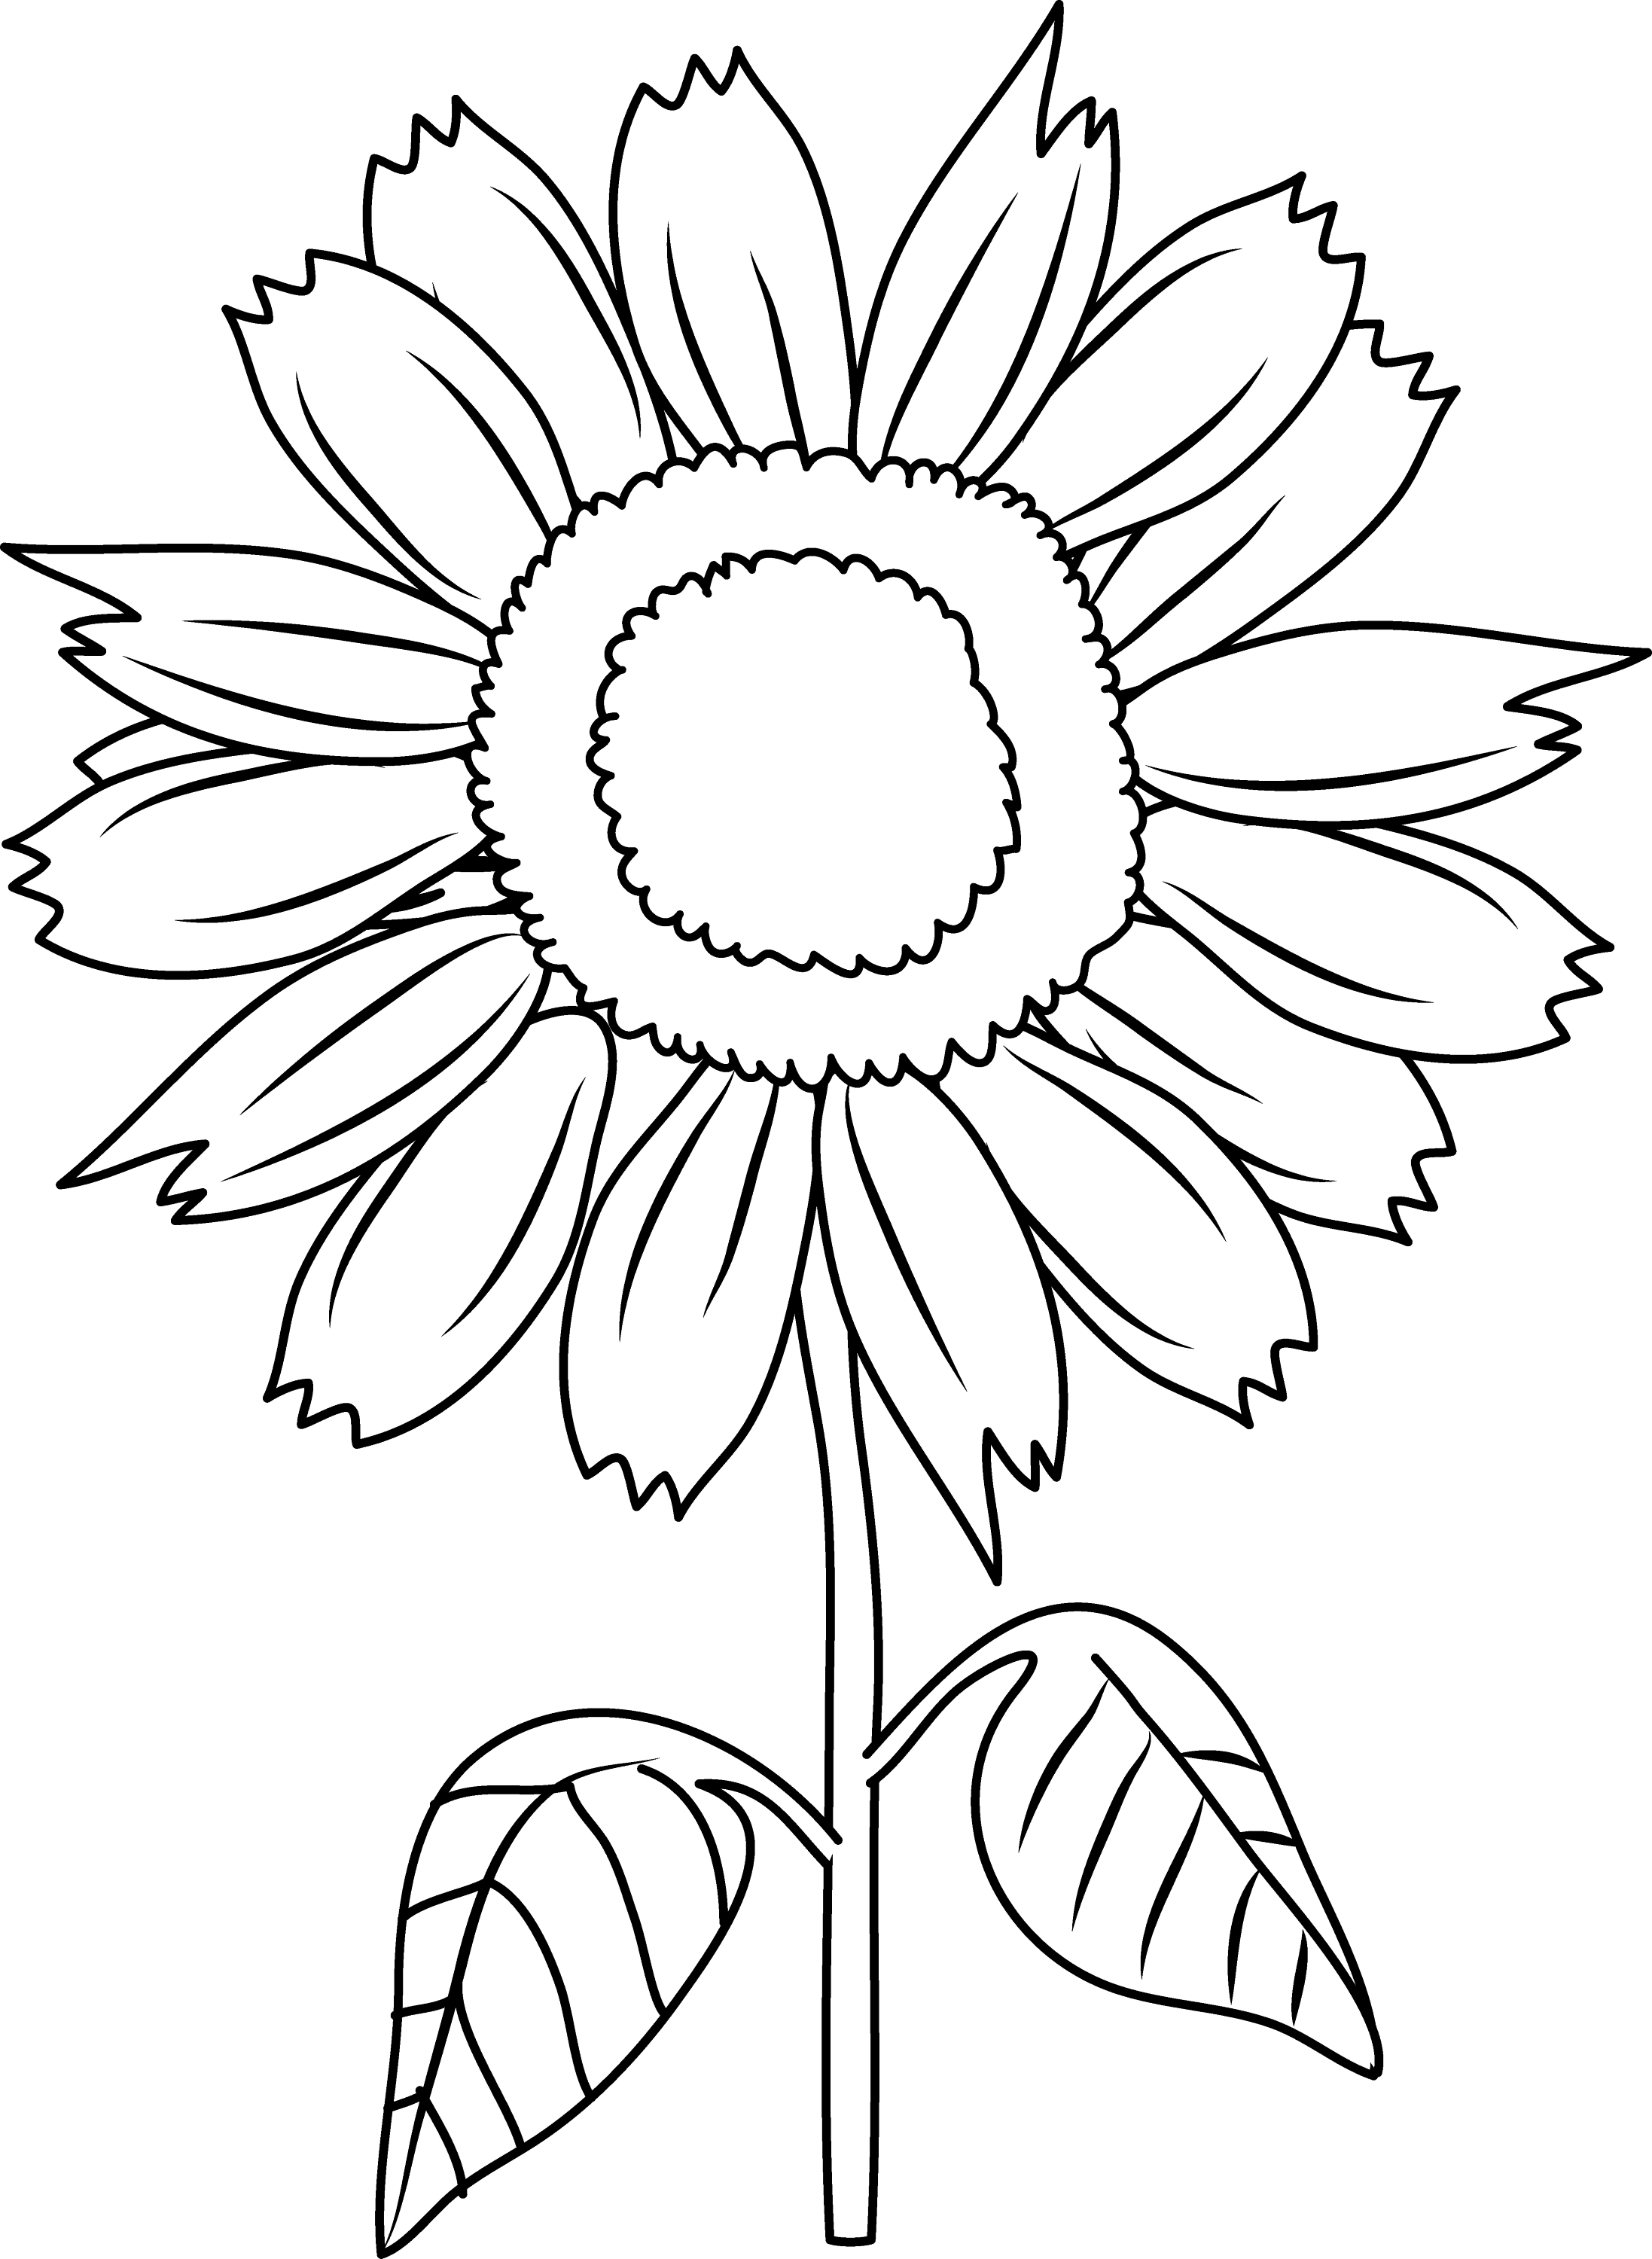 coloring sunflower picture sunflower drawing color at getdrawings free download coloring sunflower picture